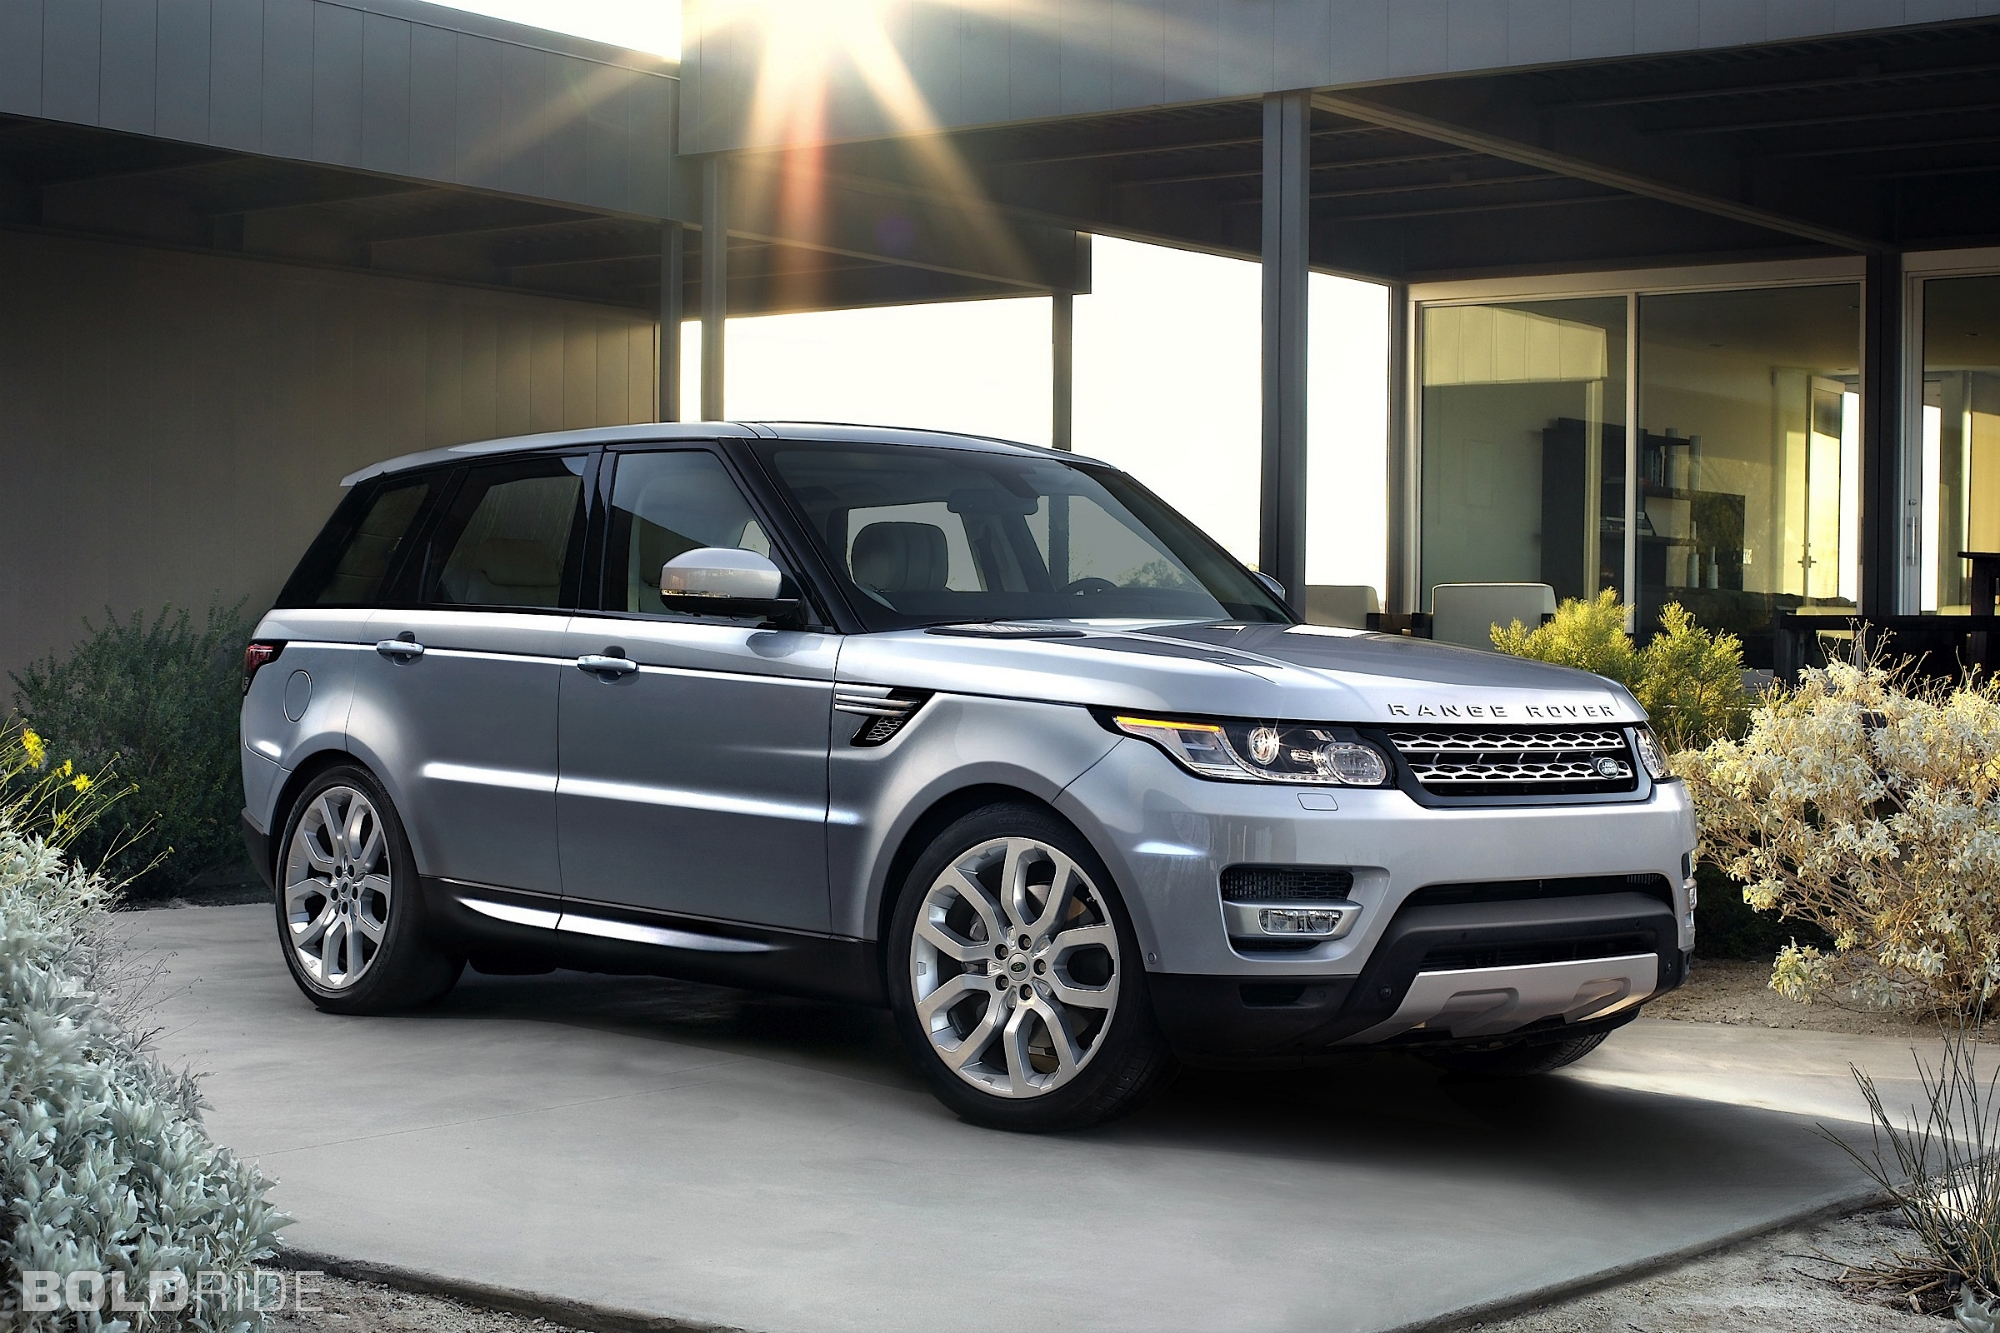 Landrover Range 2013 Land Rover Range Rover Sport Information And Photos